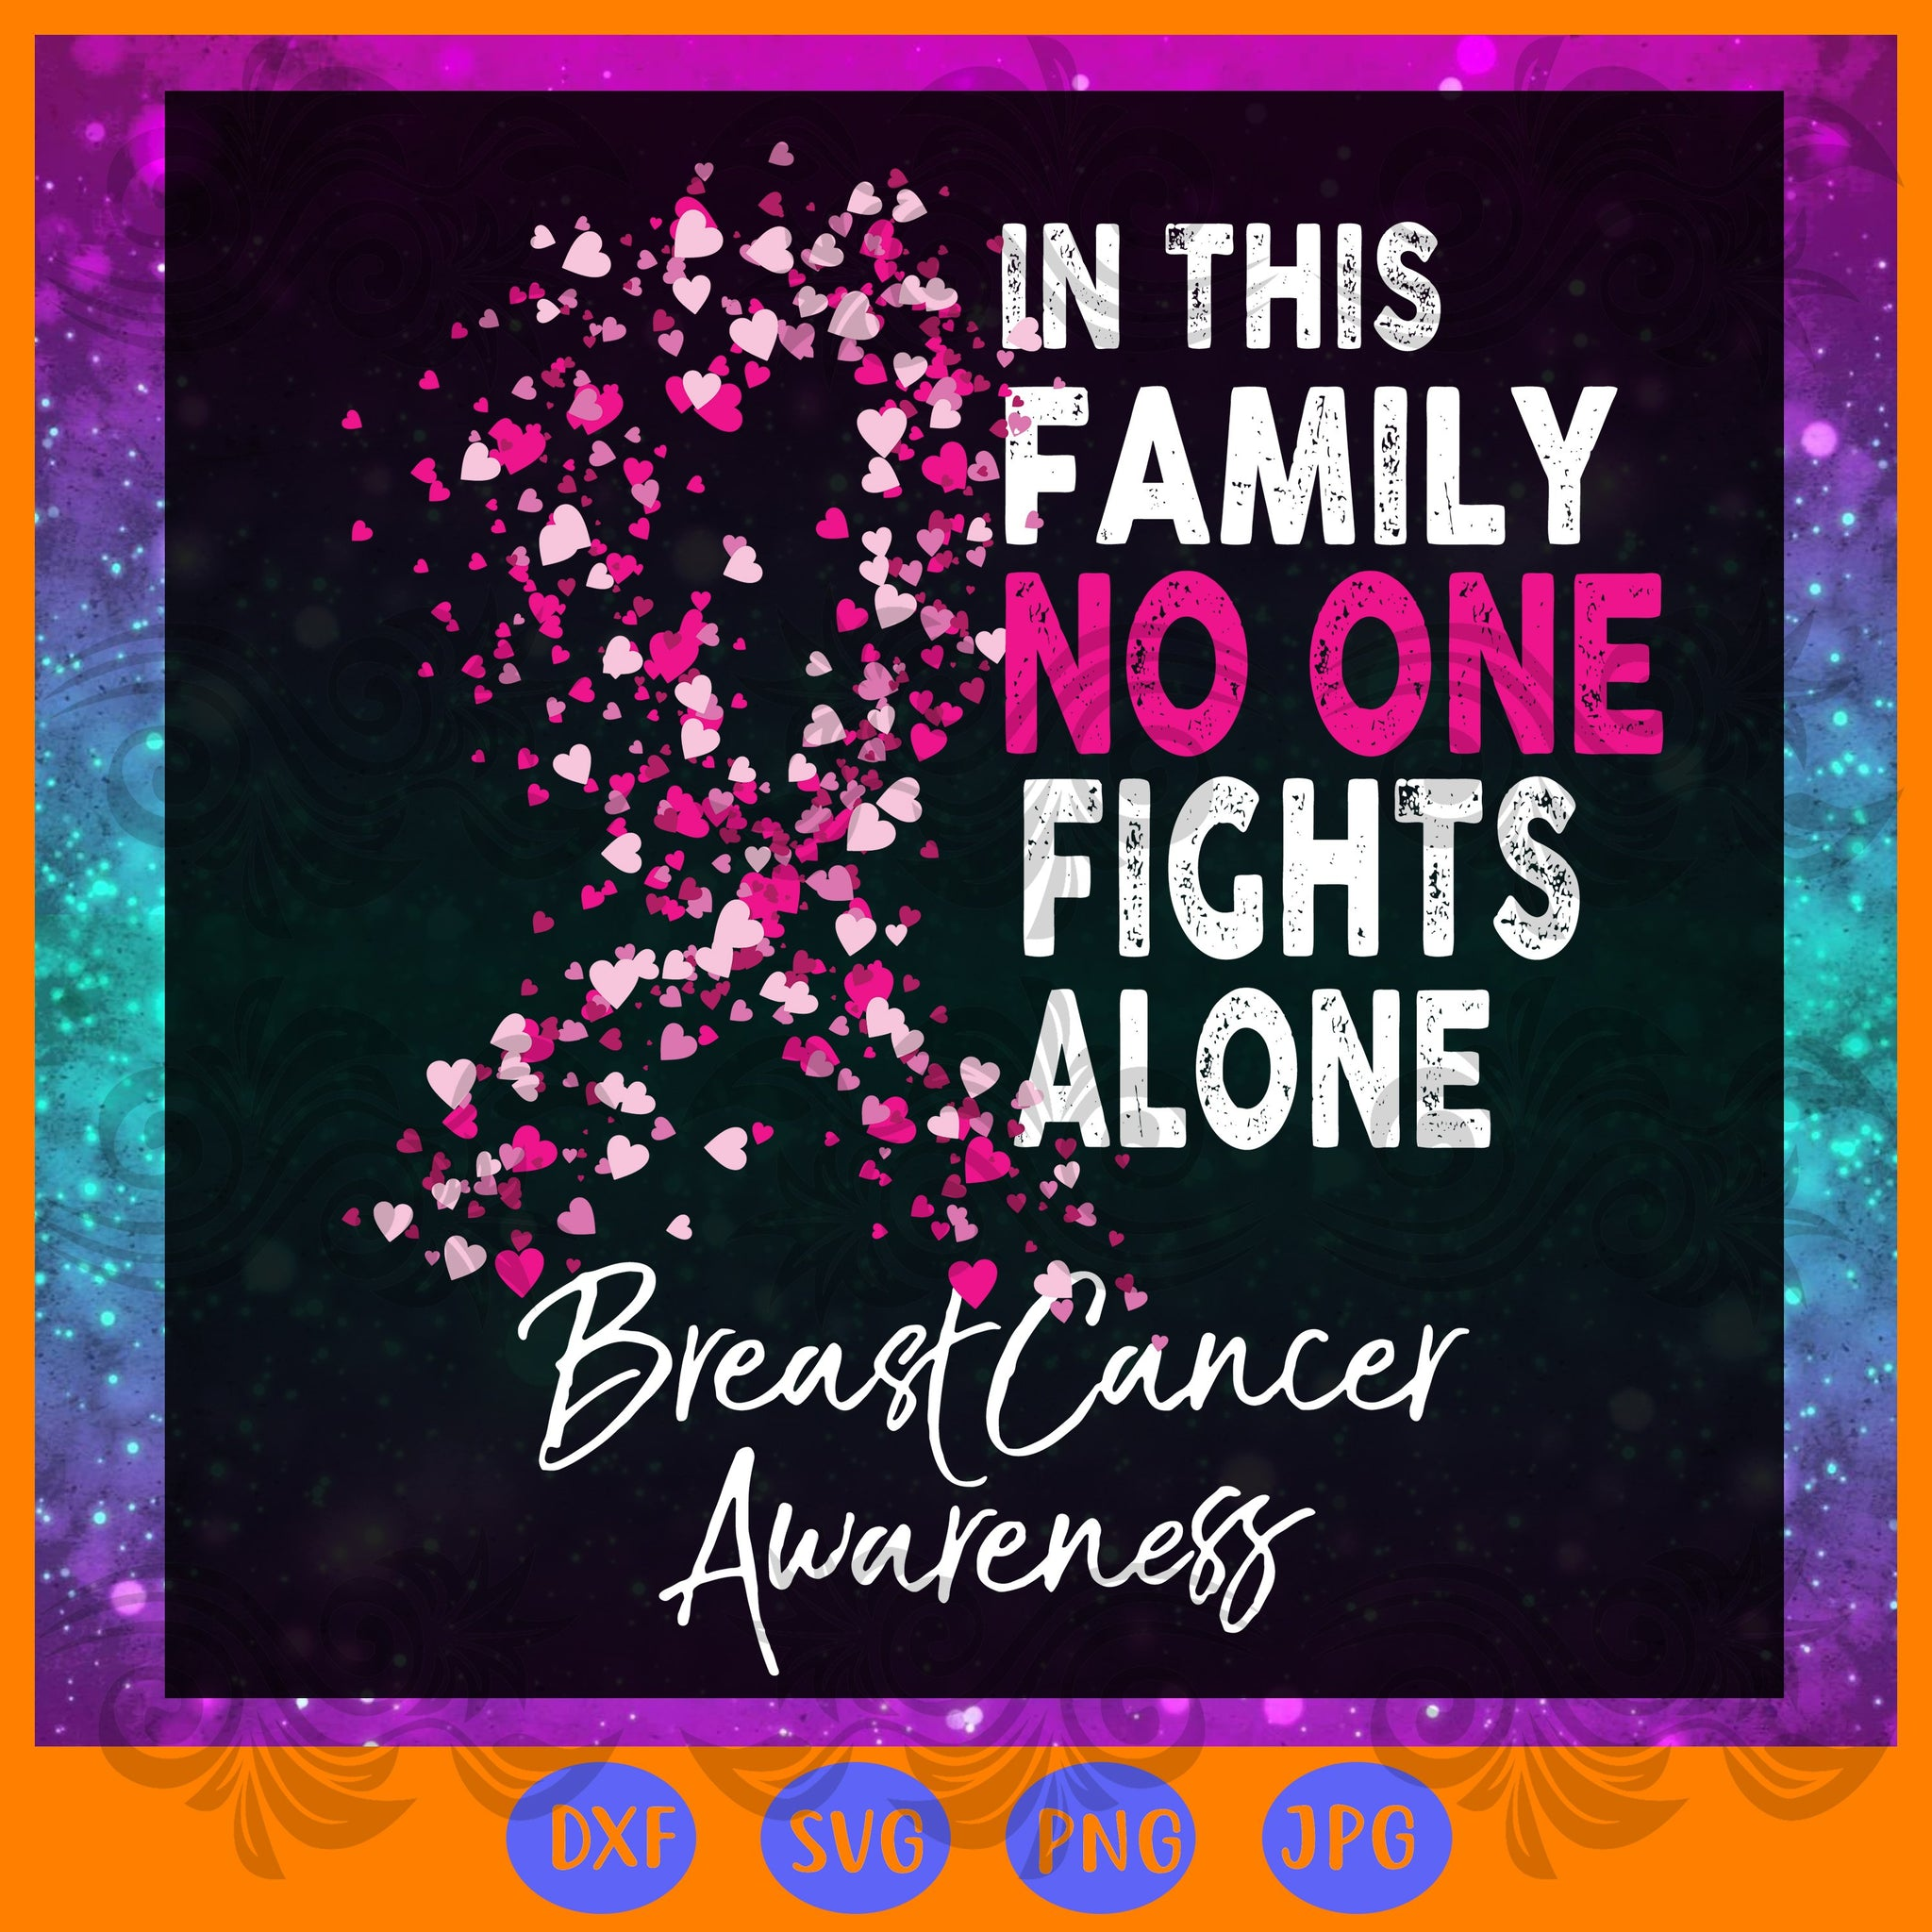 In this family no one fights alone breast cancer awareness, cancer svg,cancer ribbon svg, breast cancer ribbon, breast cancer gift, trending svg, Files For Silhouette, Files For Cricut, SVG, DXF, EPS, PNG, Instant Download